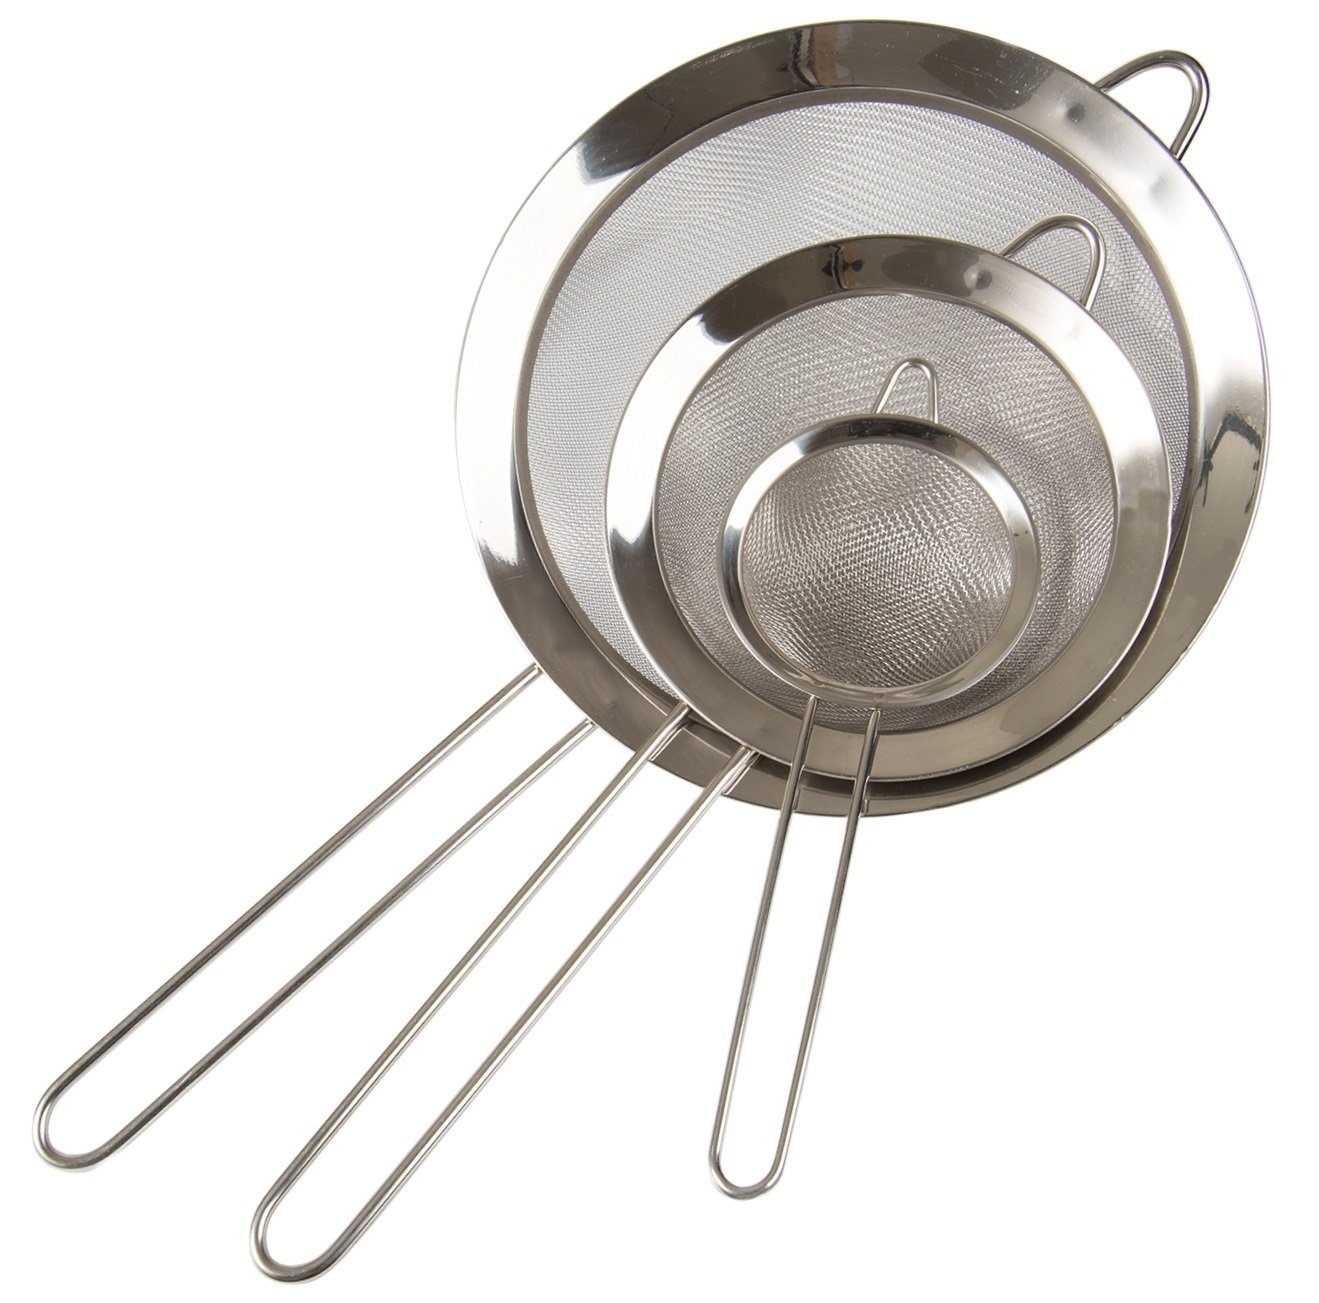 Click here to buy Set of 3- Fine Mesh Stainless Steel Strainers Premium Quality Colander Sieve with Handle By Kitchen Winners by Kitchen Winners.